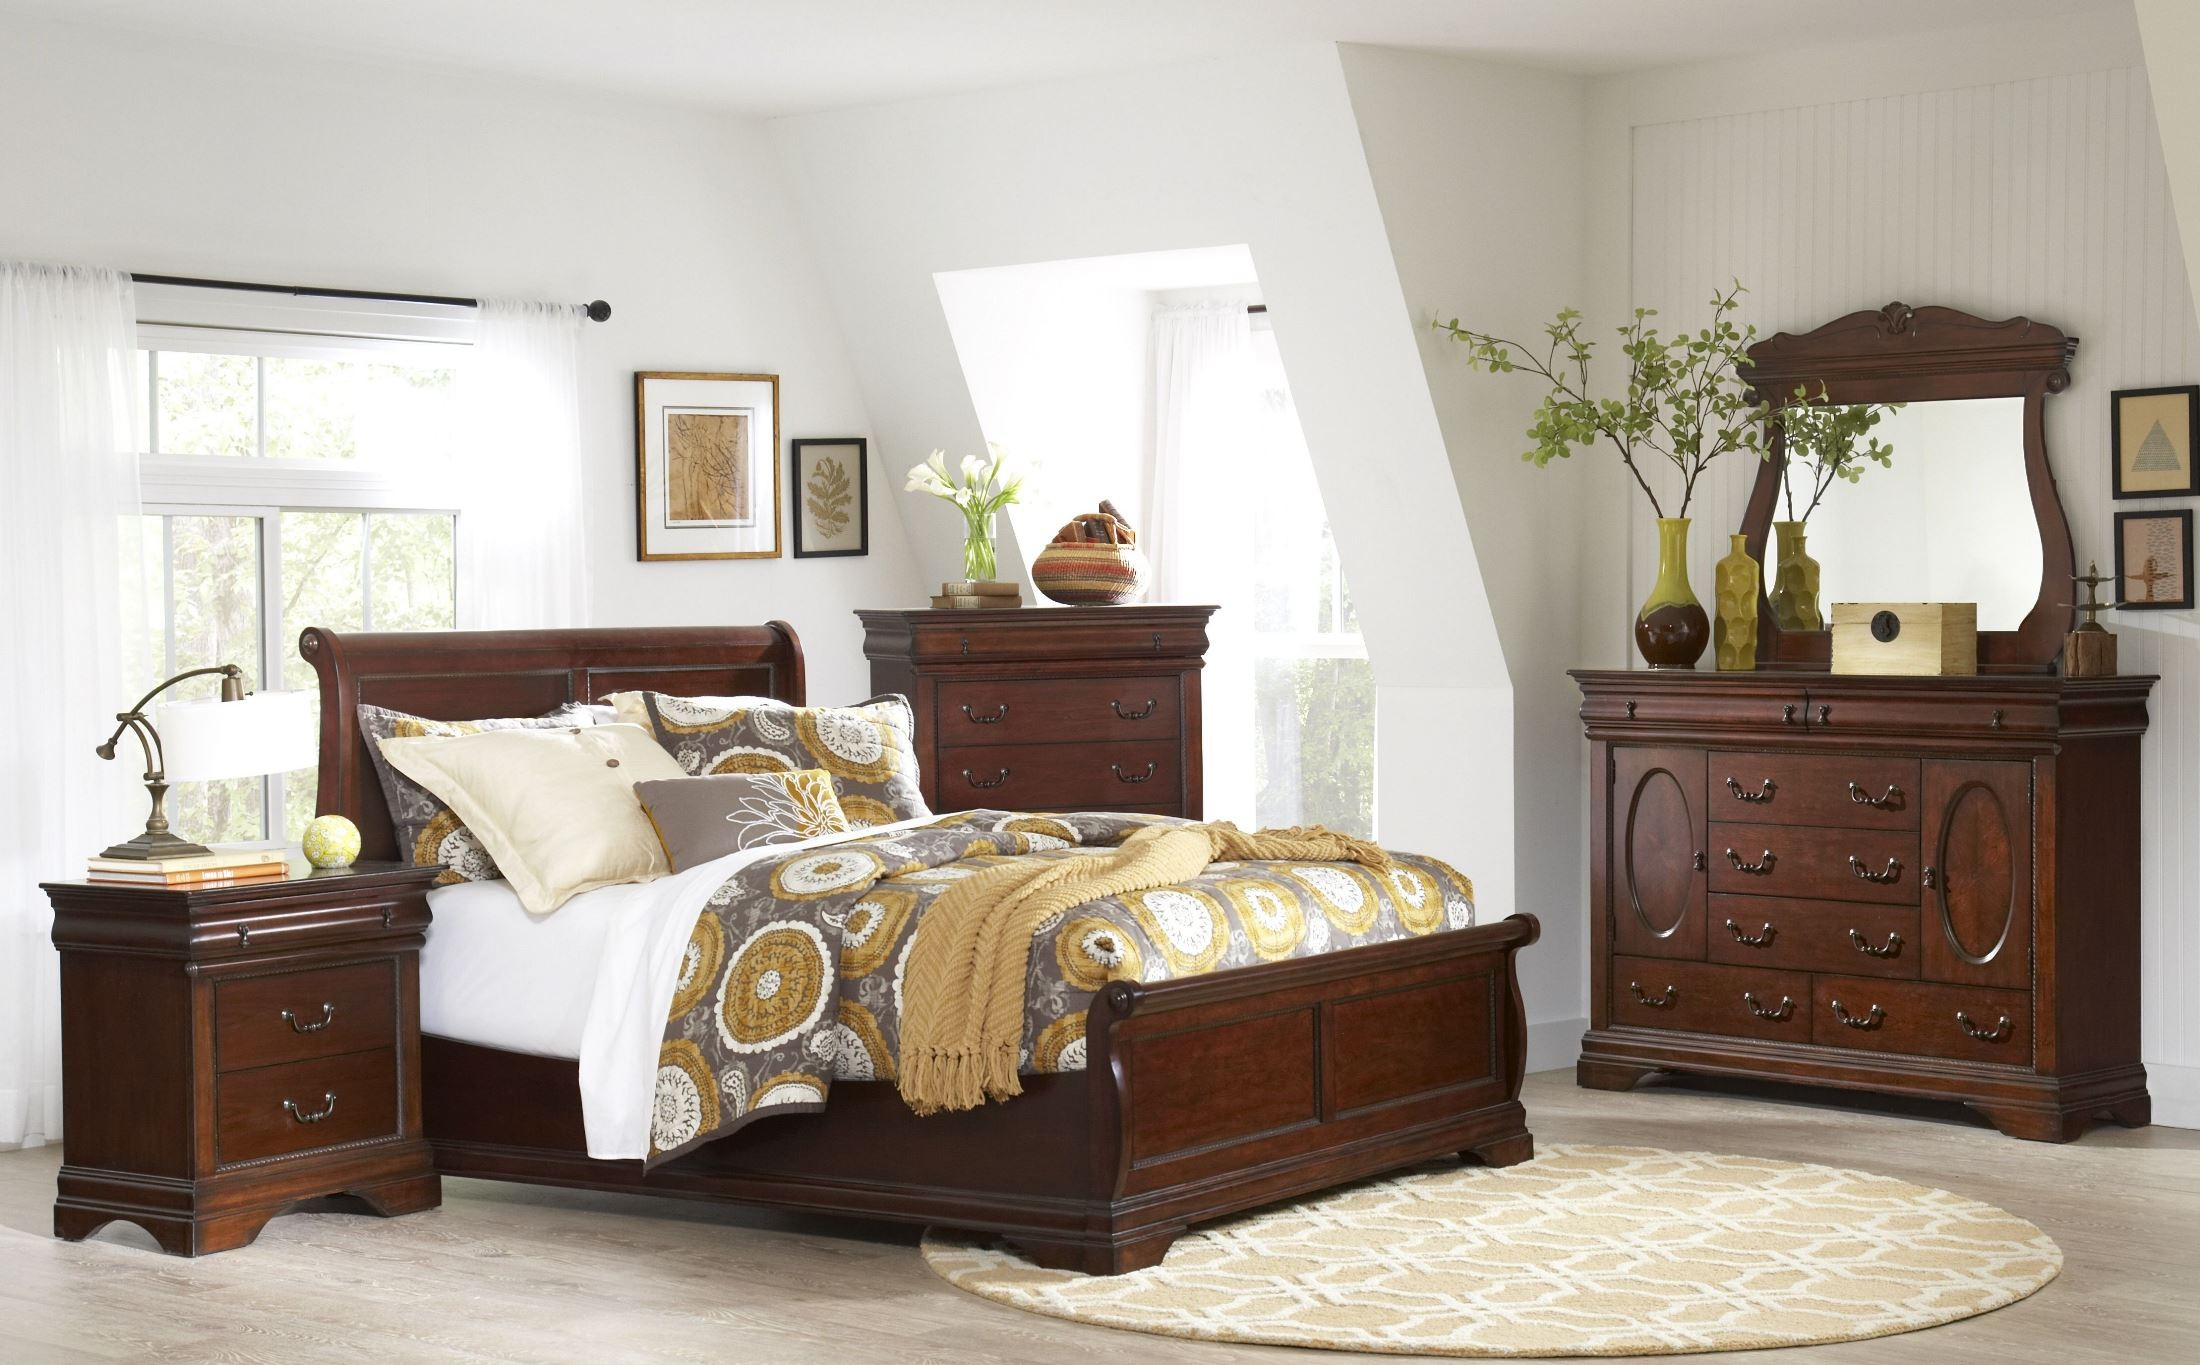 chateau vintage cherry panel bedroom set, b4800-58h-58f